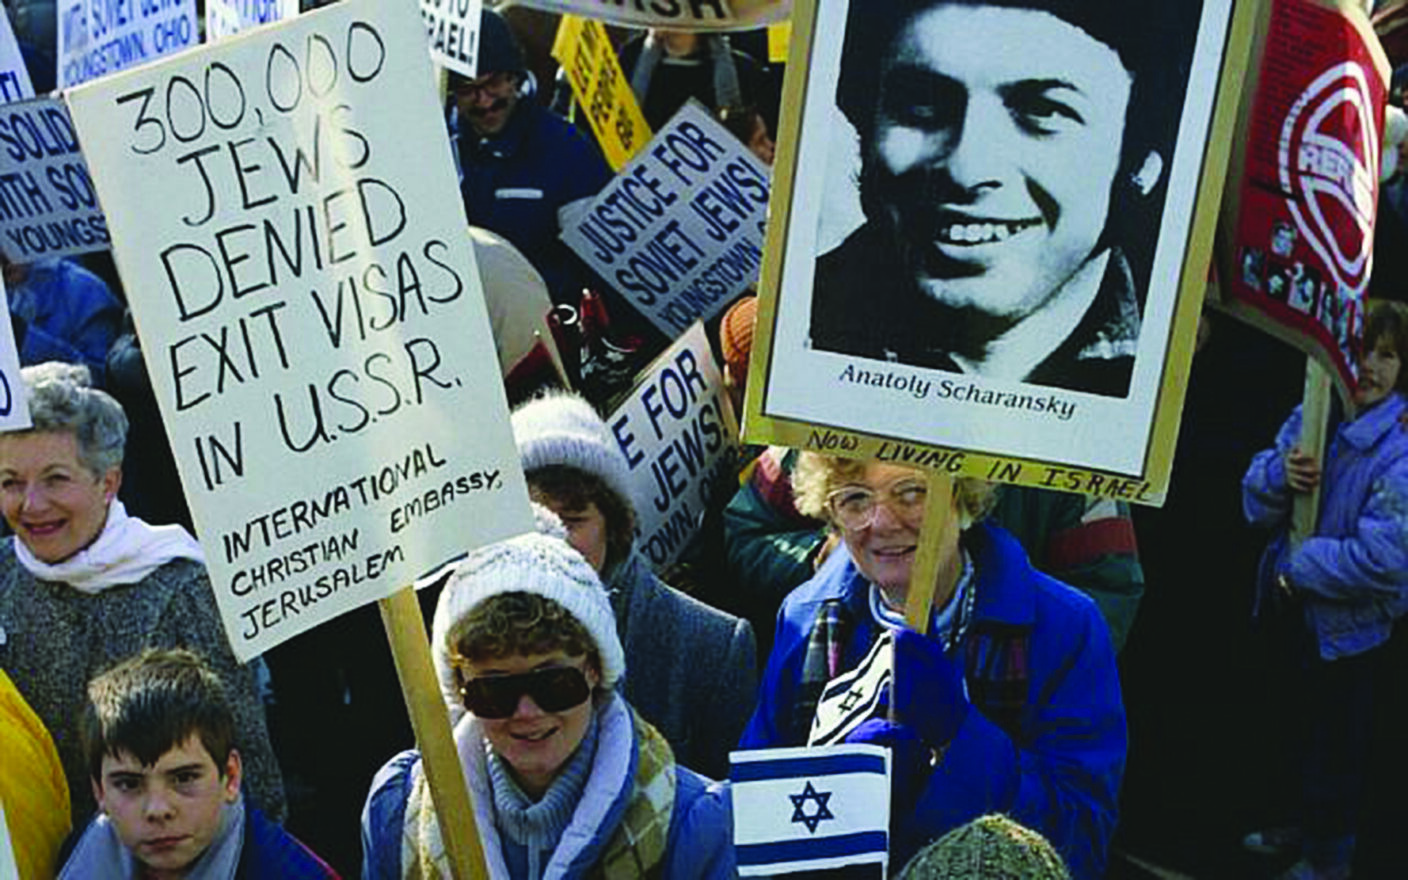 American Jews protest against Soviet Jewish policies during a demonstration in Washington, D.C.